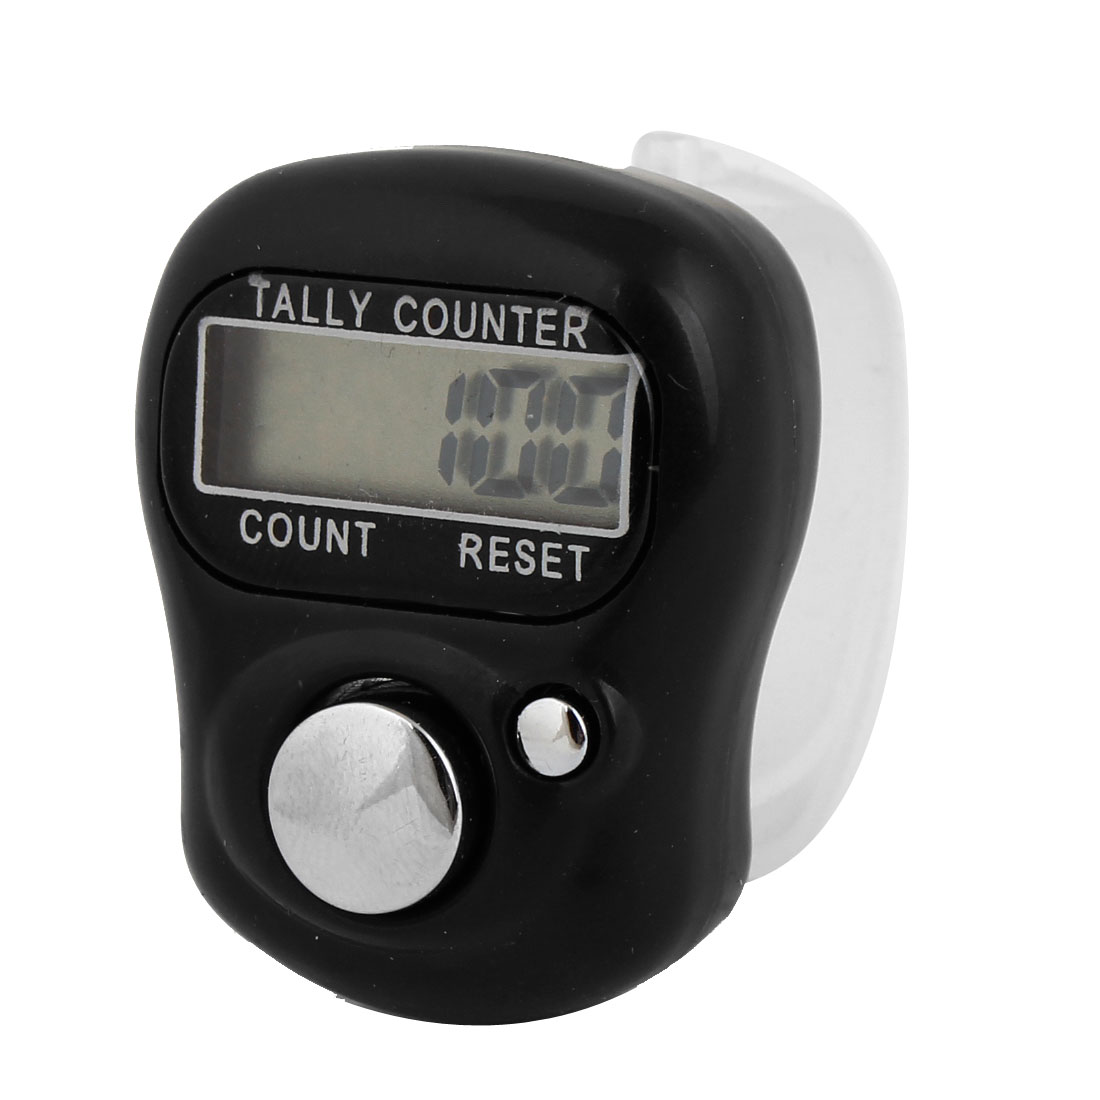 Digital 5 Digit LCD Finger Ring Tally Counter Black for Golf